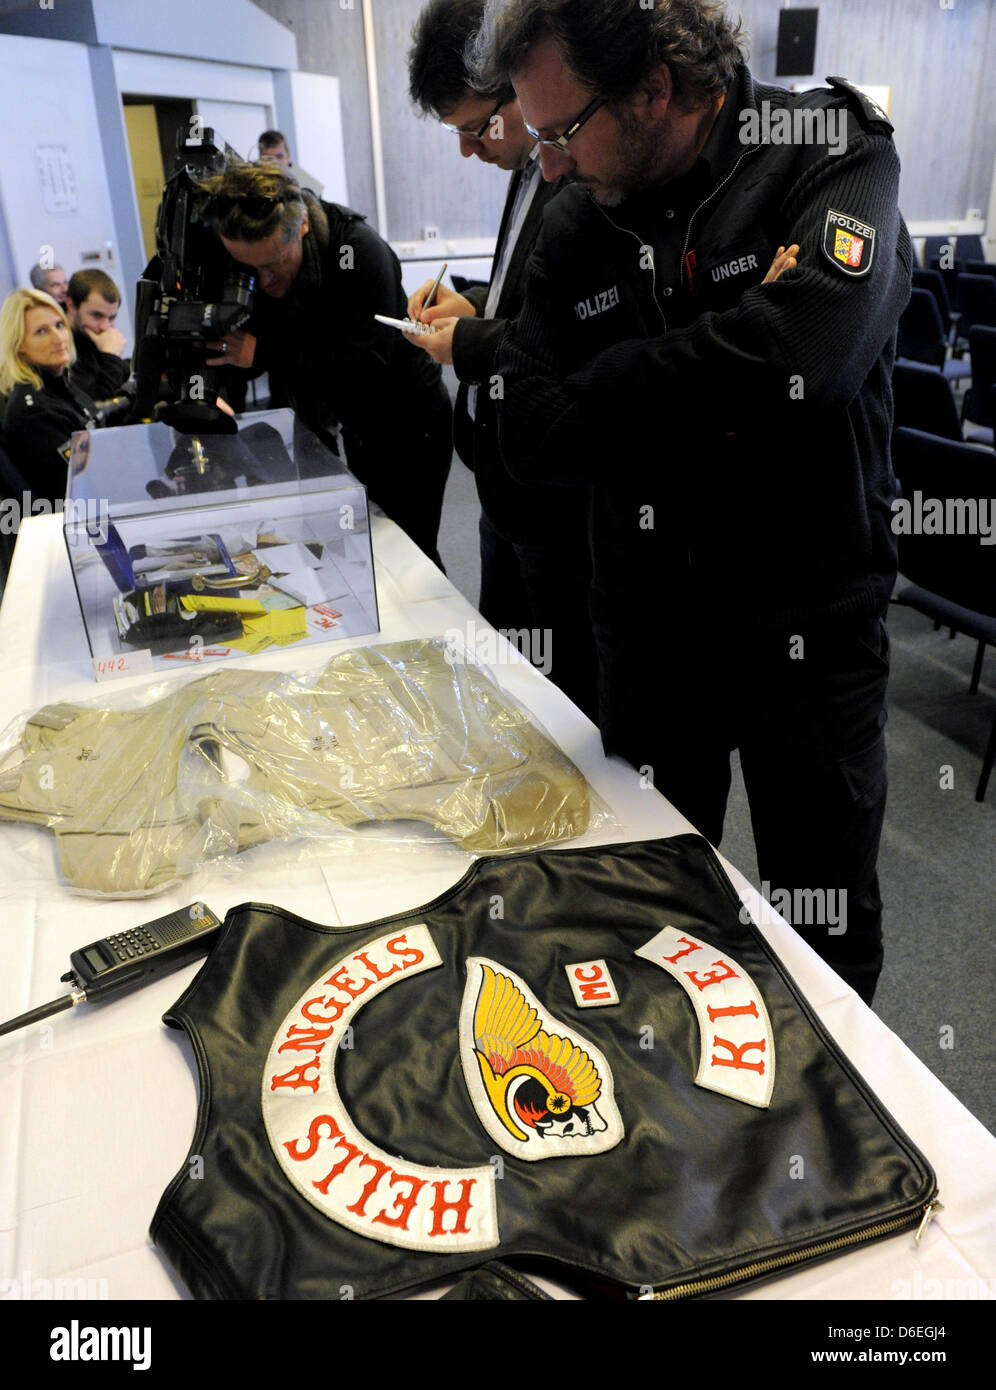 A Hells Angels vest confiscated by police, a police radio